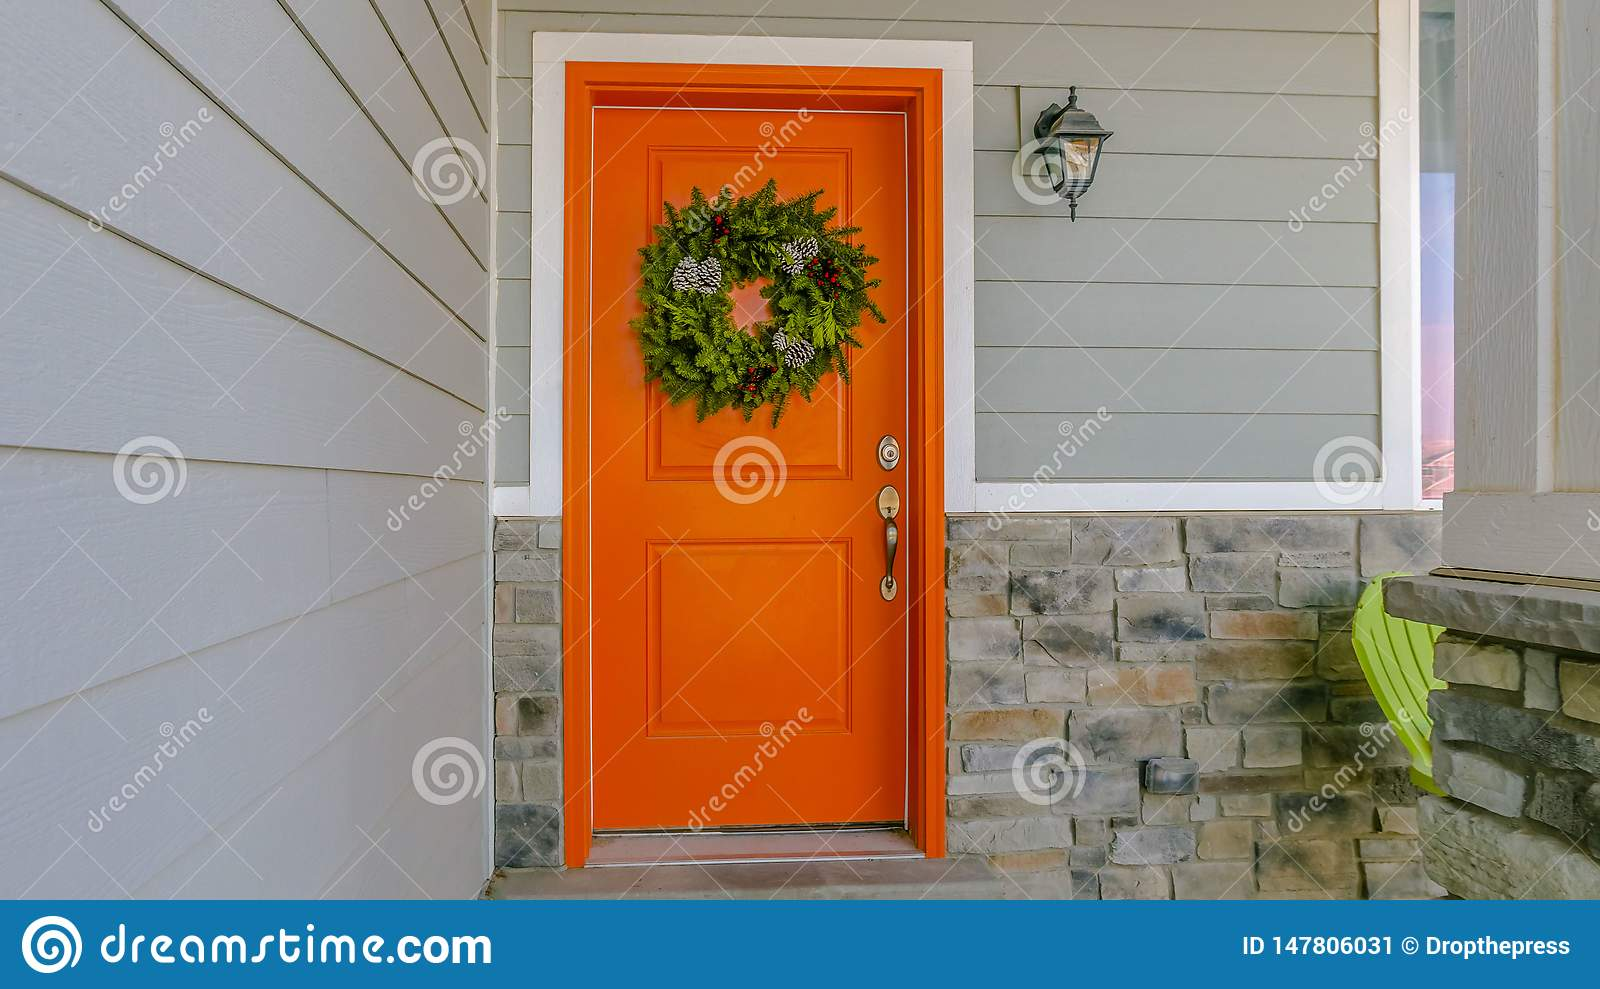 Clear Panorama Home with a welcoming wreath hanging on the orange front door